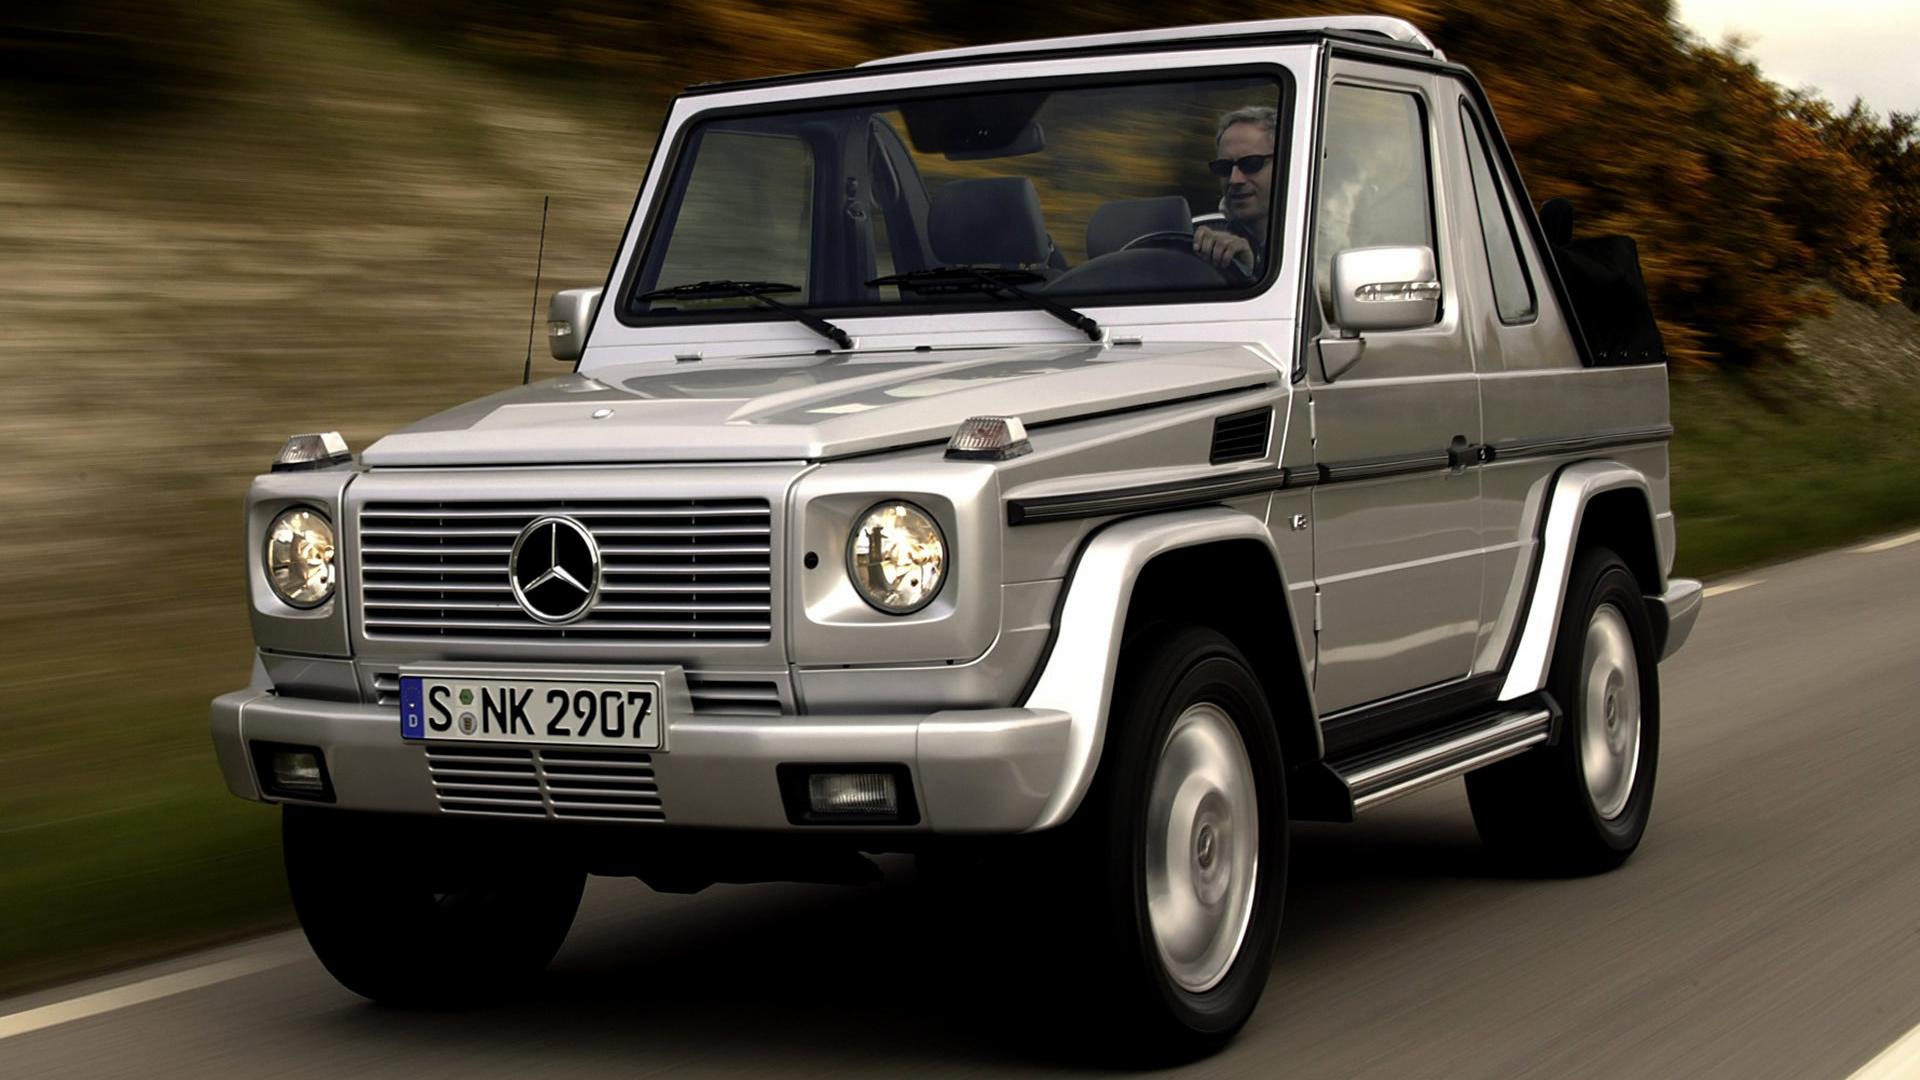 Mercedes benz g class cabriolet 2002 wallpapers and hd for Mercedes benz g class cabriolet